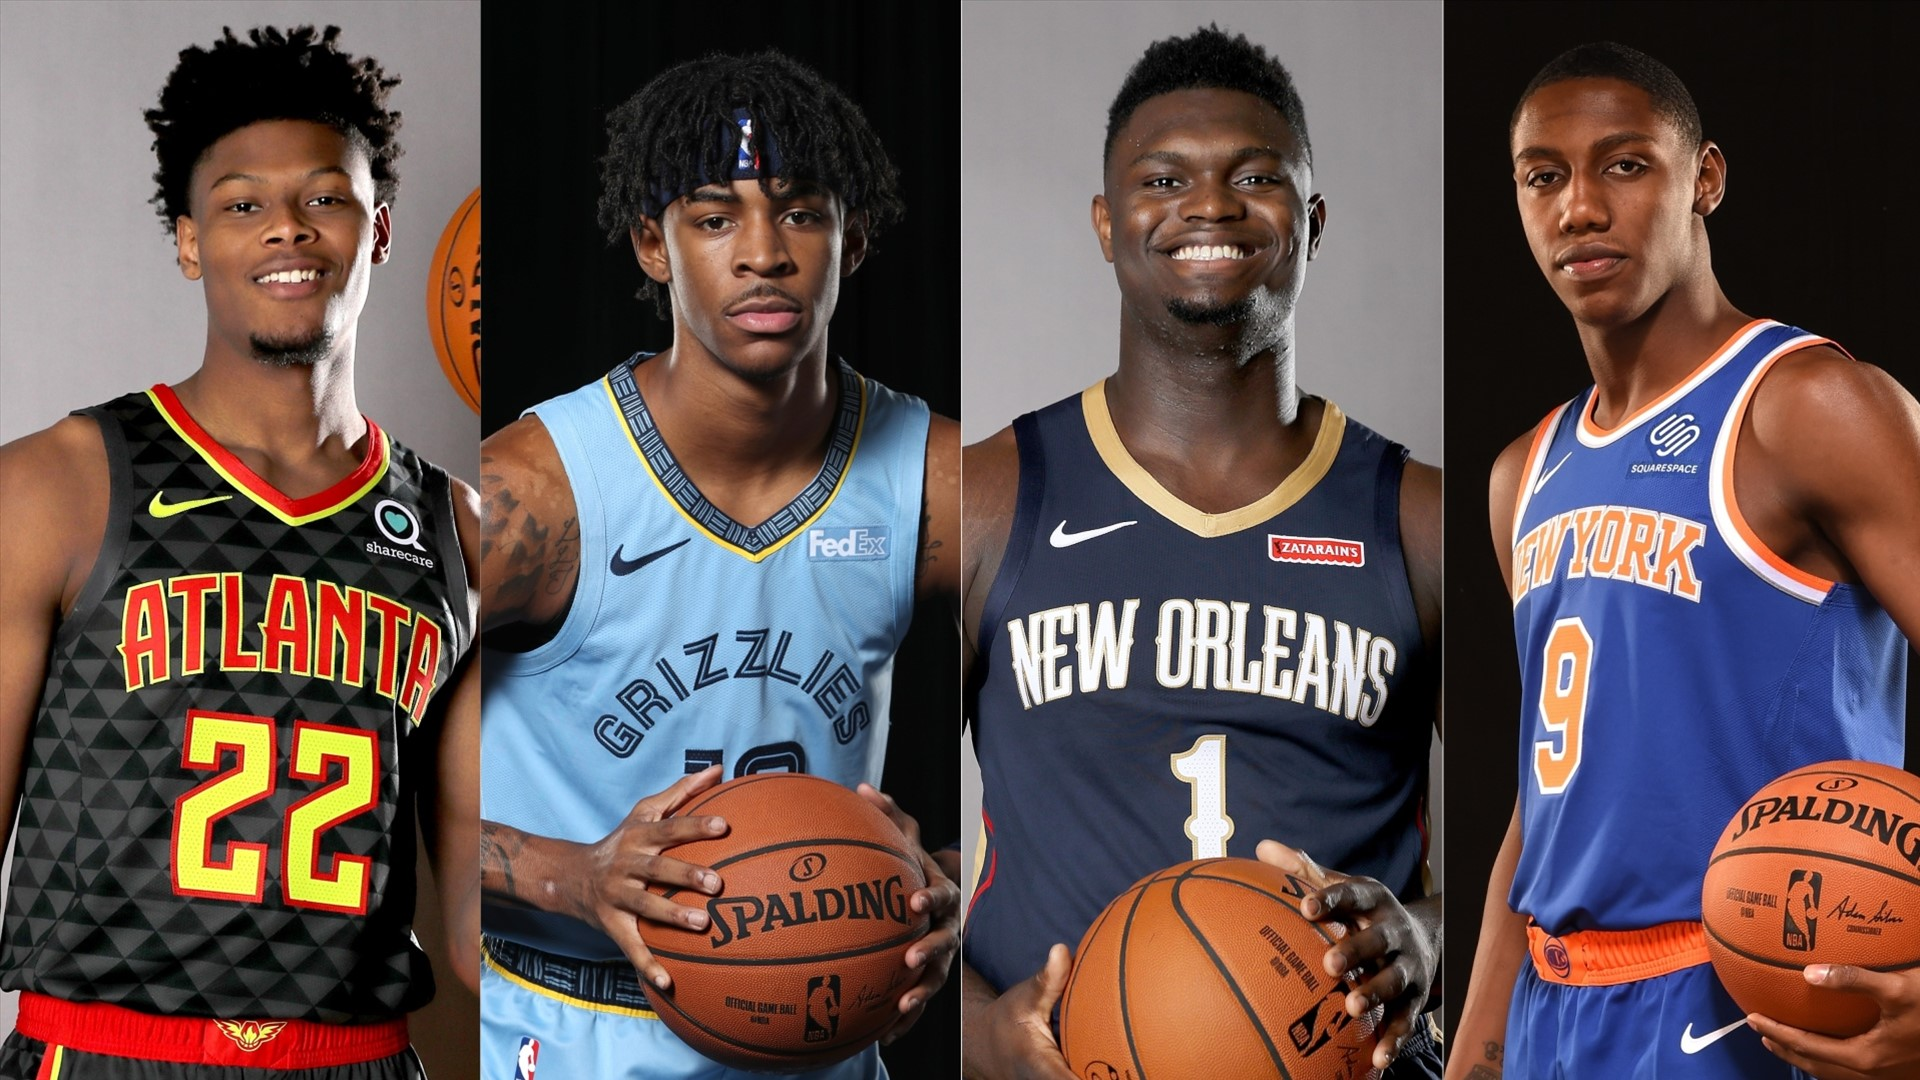 Rookie Survey: Zion Williamson, Ja Morant early favorites to shine in 2019-20